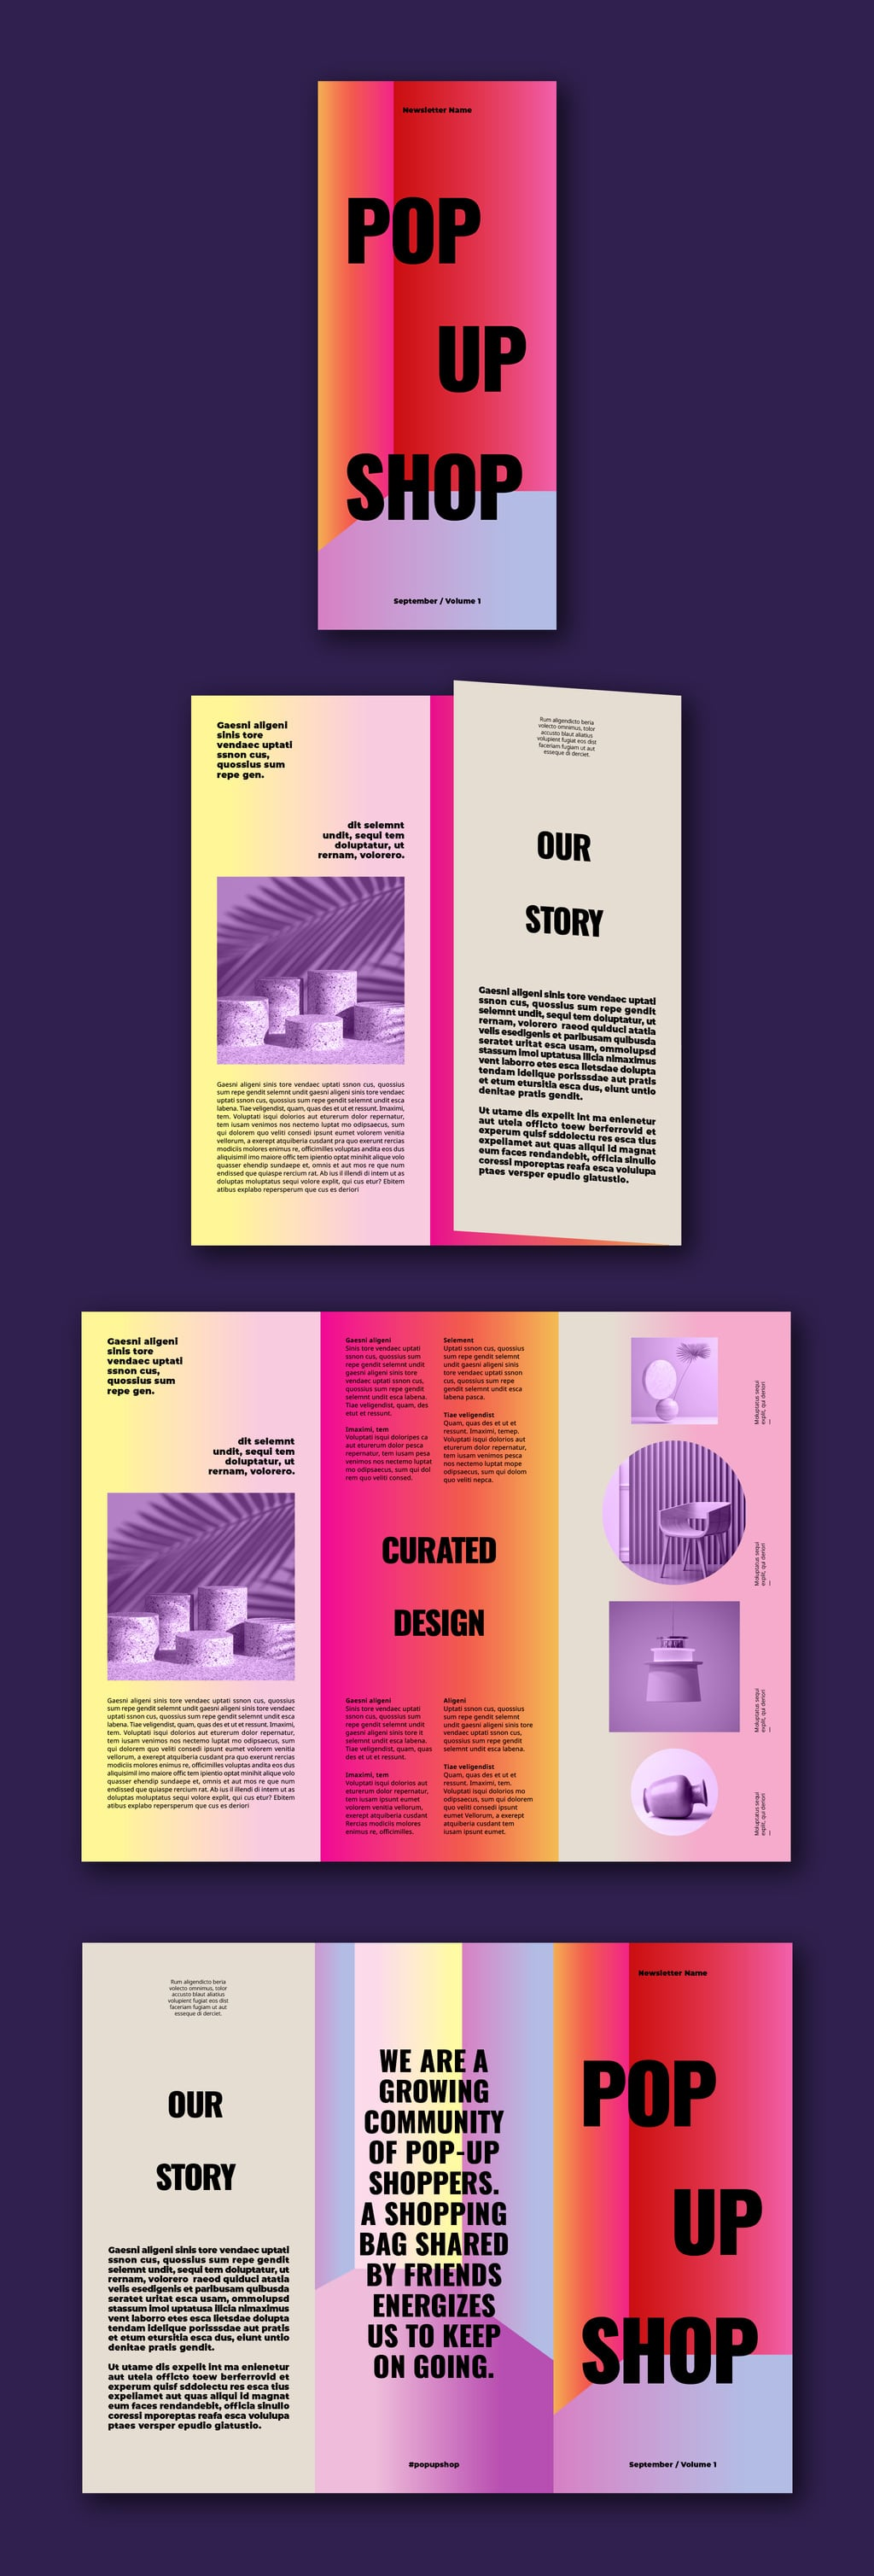 InDesign Trifold Template Free: Colorful Shop Brochure Layout